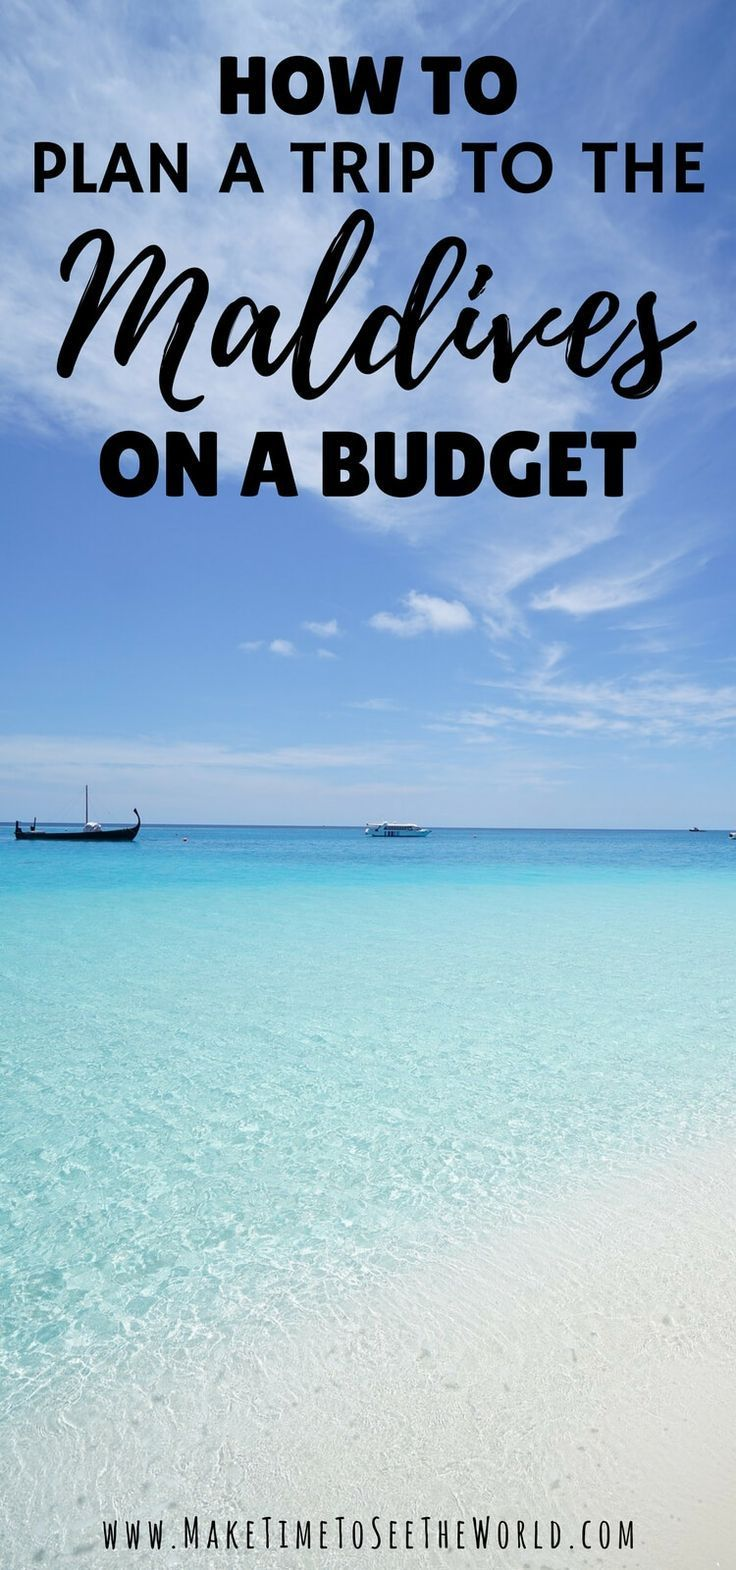 Plan the Perfect Maldives Vaction on any Budget ******************************************************************************* Maldives The Maldives Where To Stay in the Maldives Maldives Travel Guide How to plan a trip to the Maldives Travel o